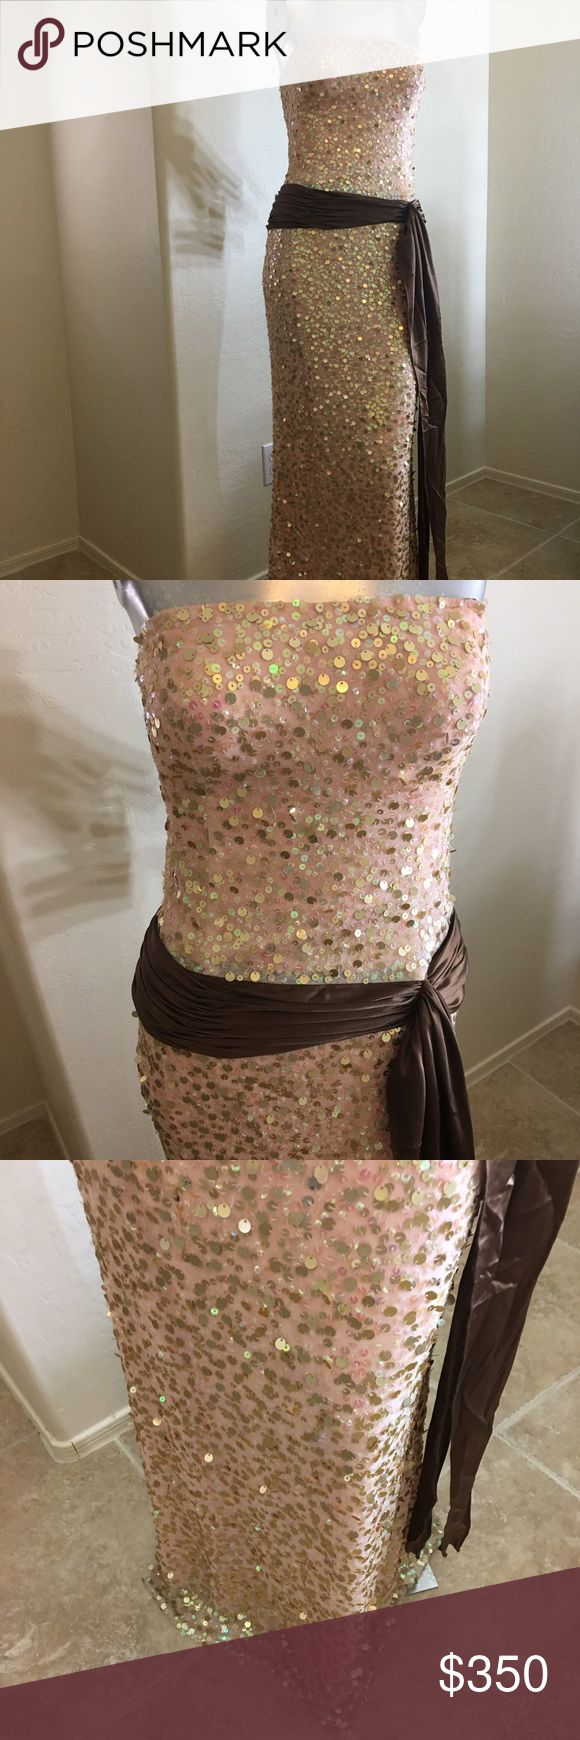 Jovani Prom/Evening/Bridal Excellent condition 12 This is a beautiful Jovani gown in excellent condition. Wore once for prom. 👄 Original cost $500.00. All sequins are attached no missing pieces. No rips or tears. Size 12. If you need additional information just ask! Thanks for stopping by...👑 Jovani Dresses Prom